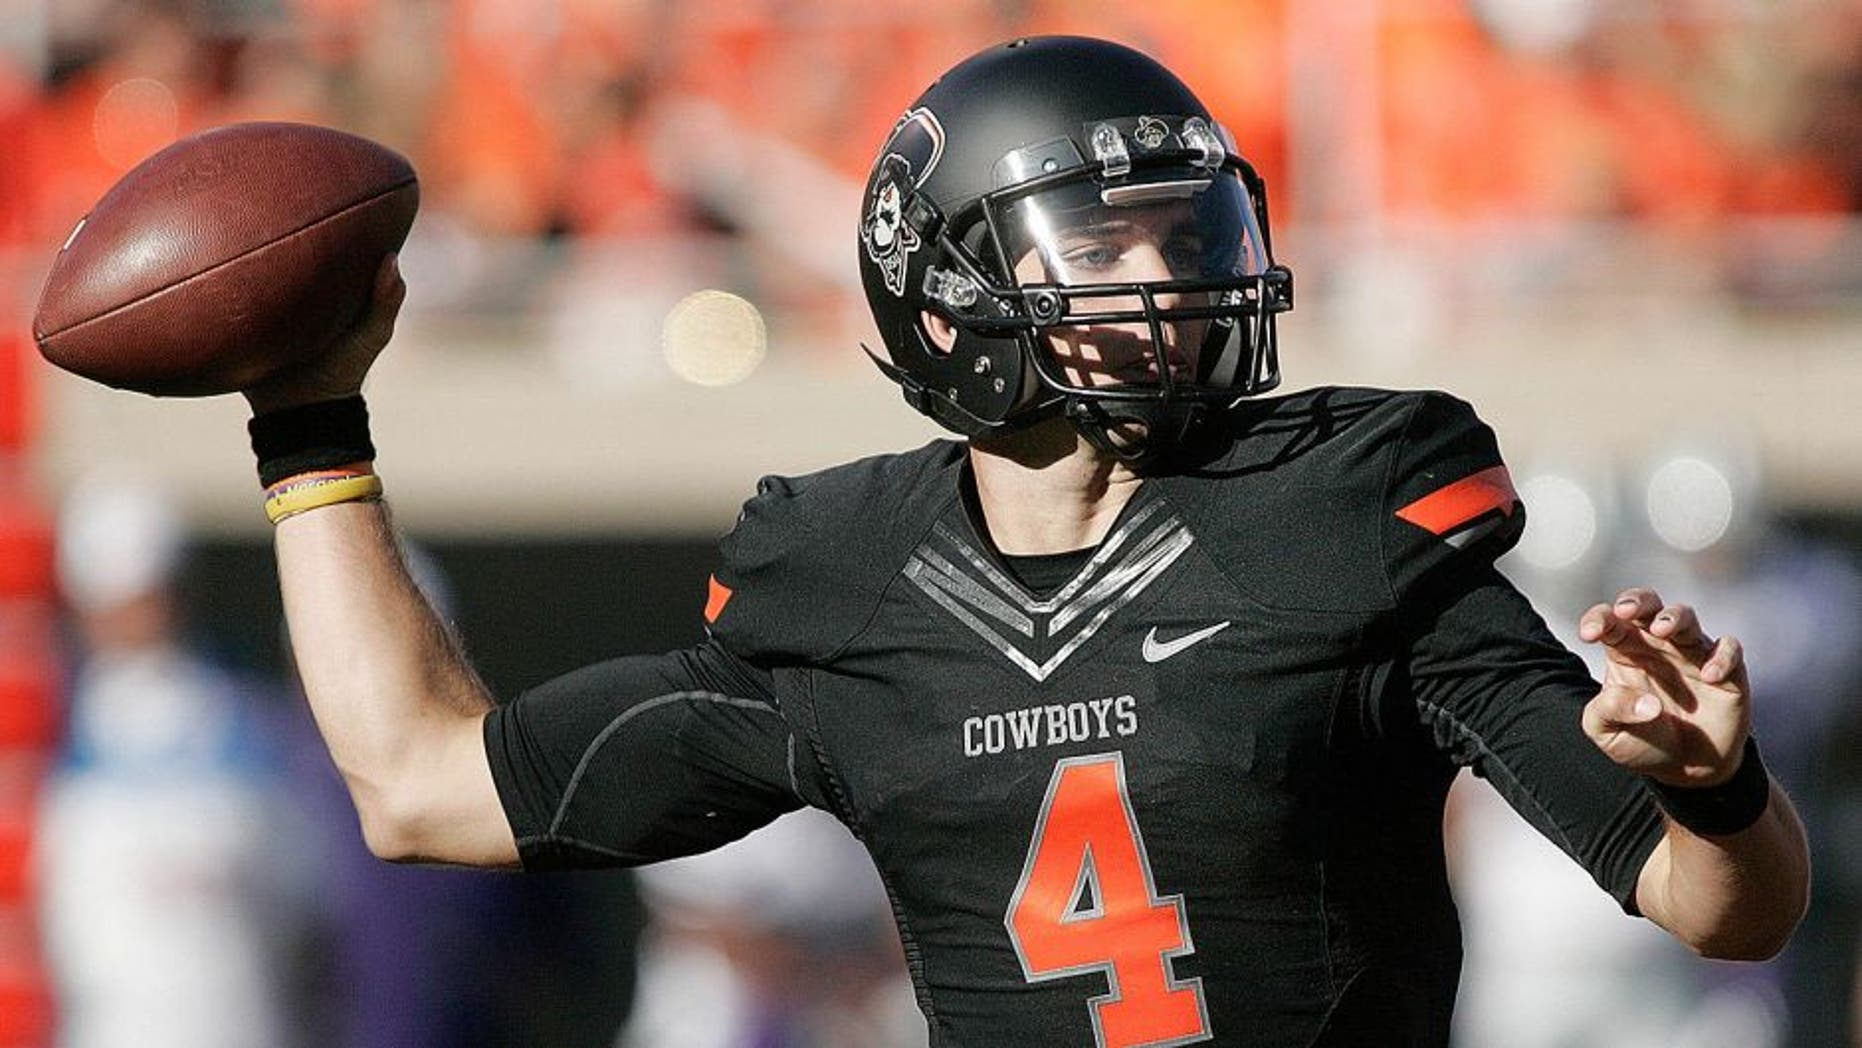 STILLWATER, OK - OCTOBER 5: Quarterback J.W. Walsh #4 of the Oklahoma State Cowboys looks to throw against the Kansas State Wildcats October 5, 2013 at Boone Pickens Stadium in Stillwater, Oklahoma. The Cowboys defeated the Wildcats 33-29. (Photo by Brett Deering/Getty Images)